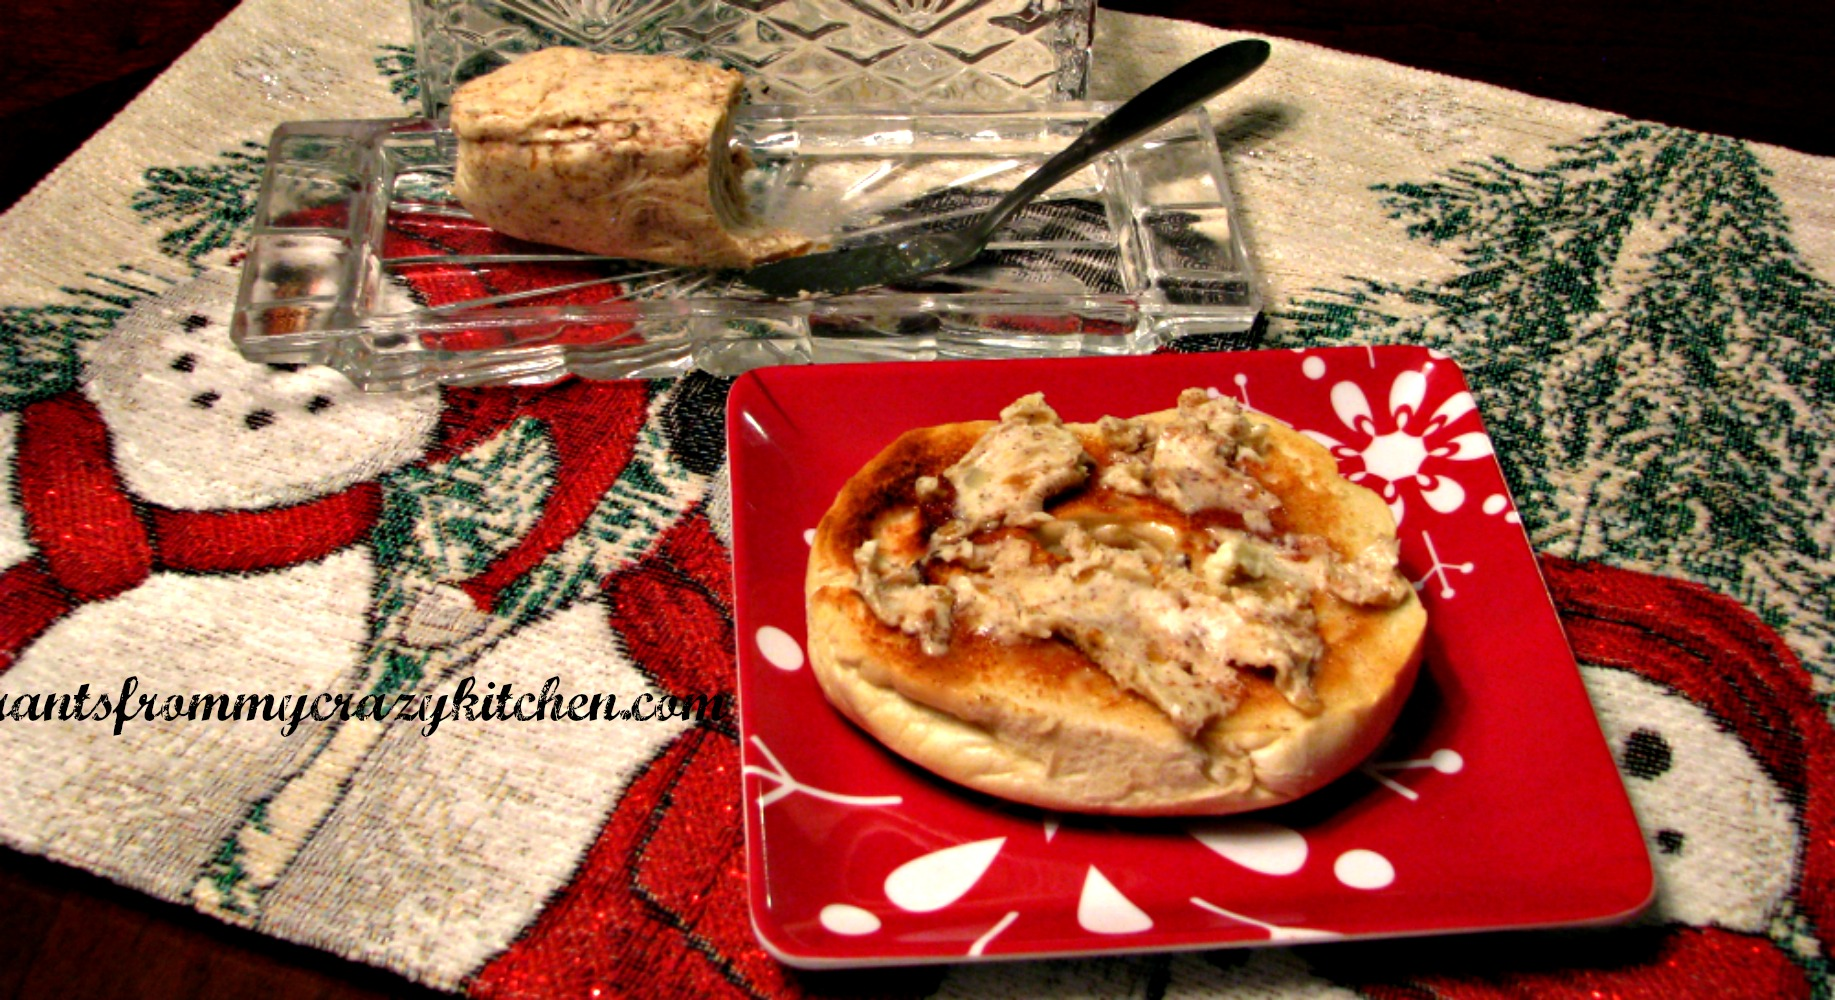 Caramelized Onion and Gingerbread Spice Butter on a Bagel